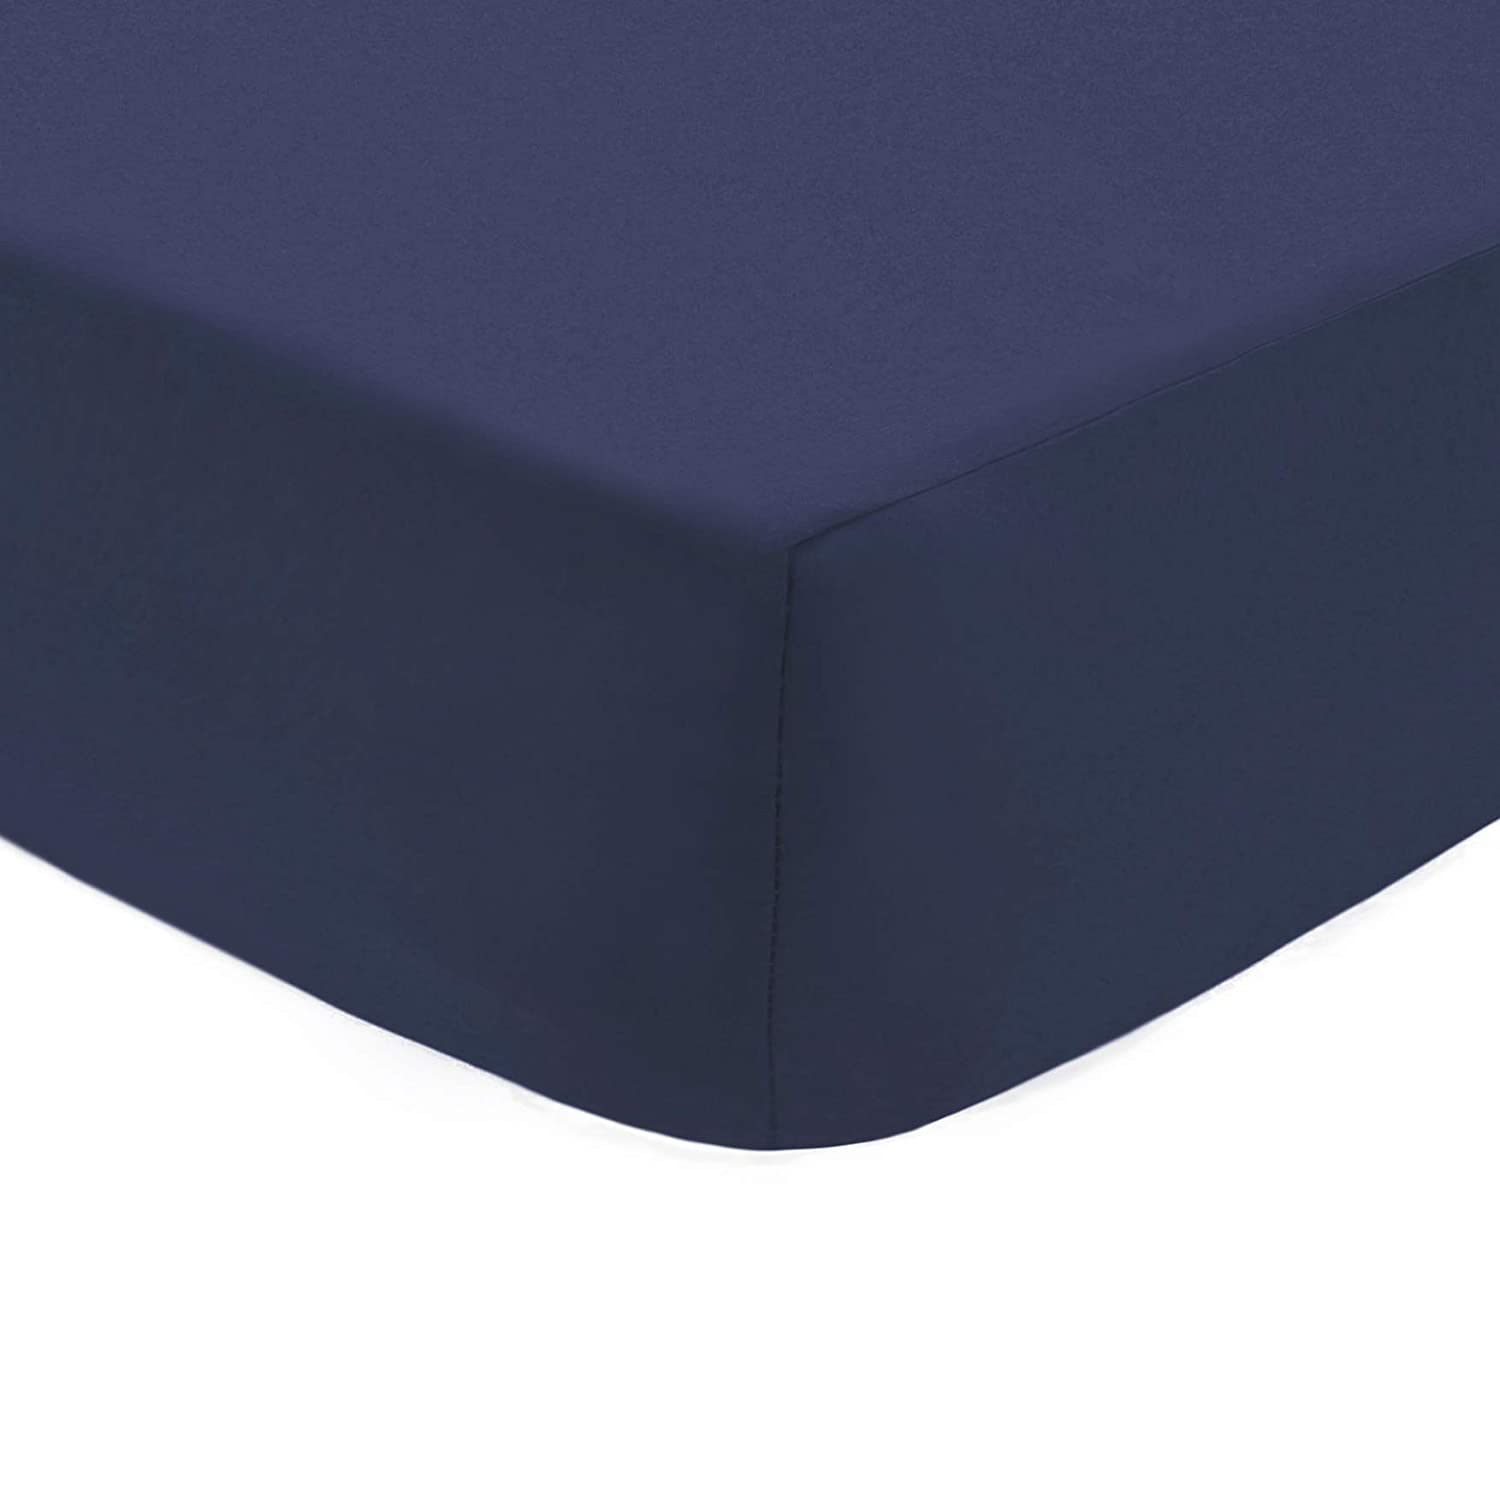 American Baby Company 100% Natural Cotton Percale Fitted Crib Sheet for Standard Crib and Toddler Mattresses, Navy, Soft Breathable, for Boys